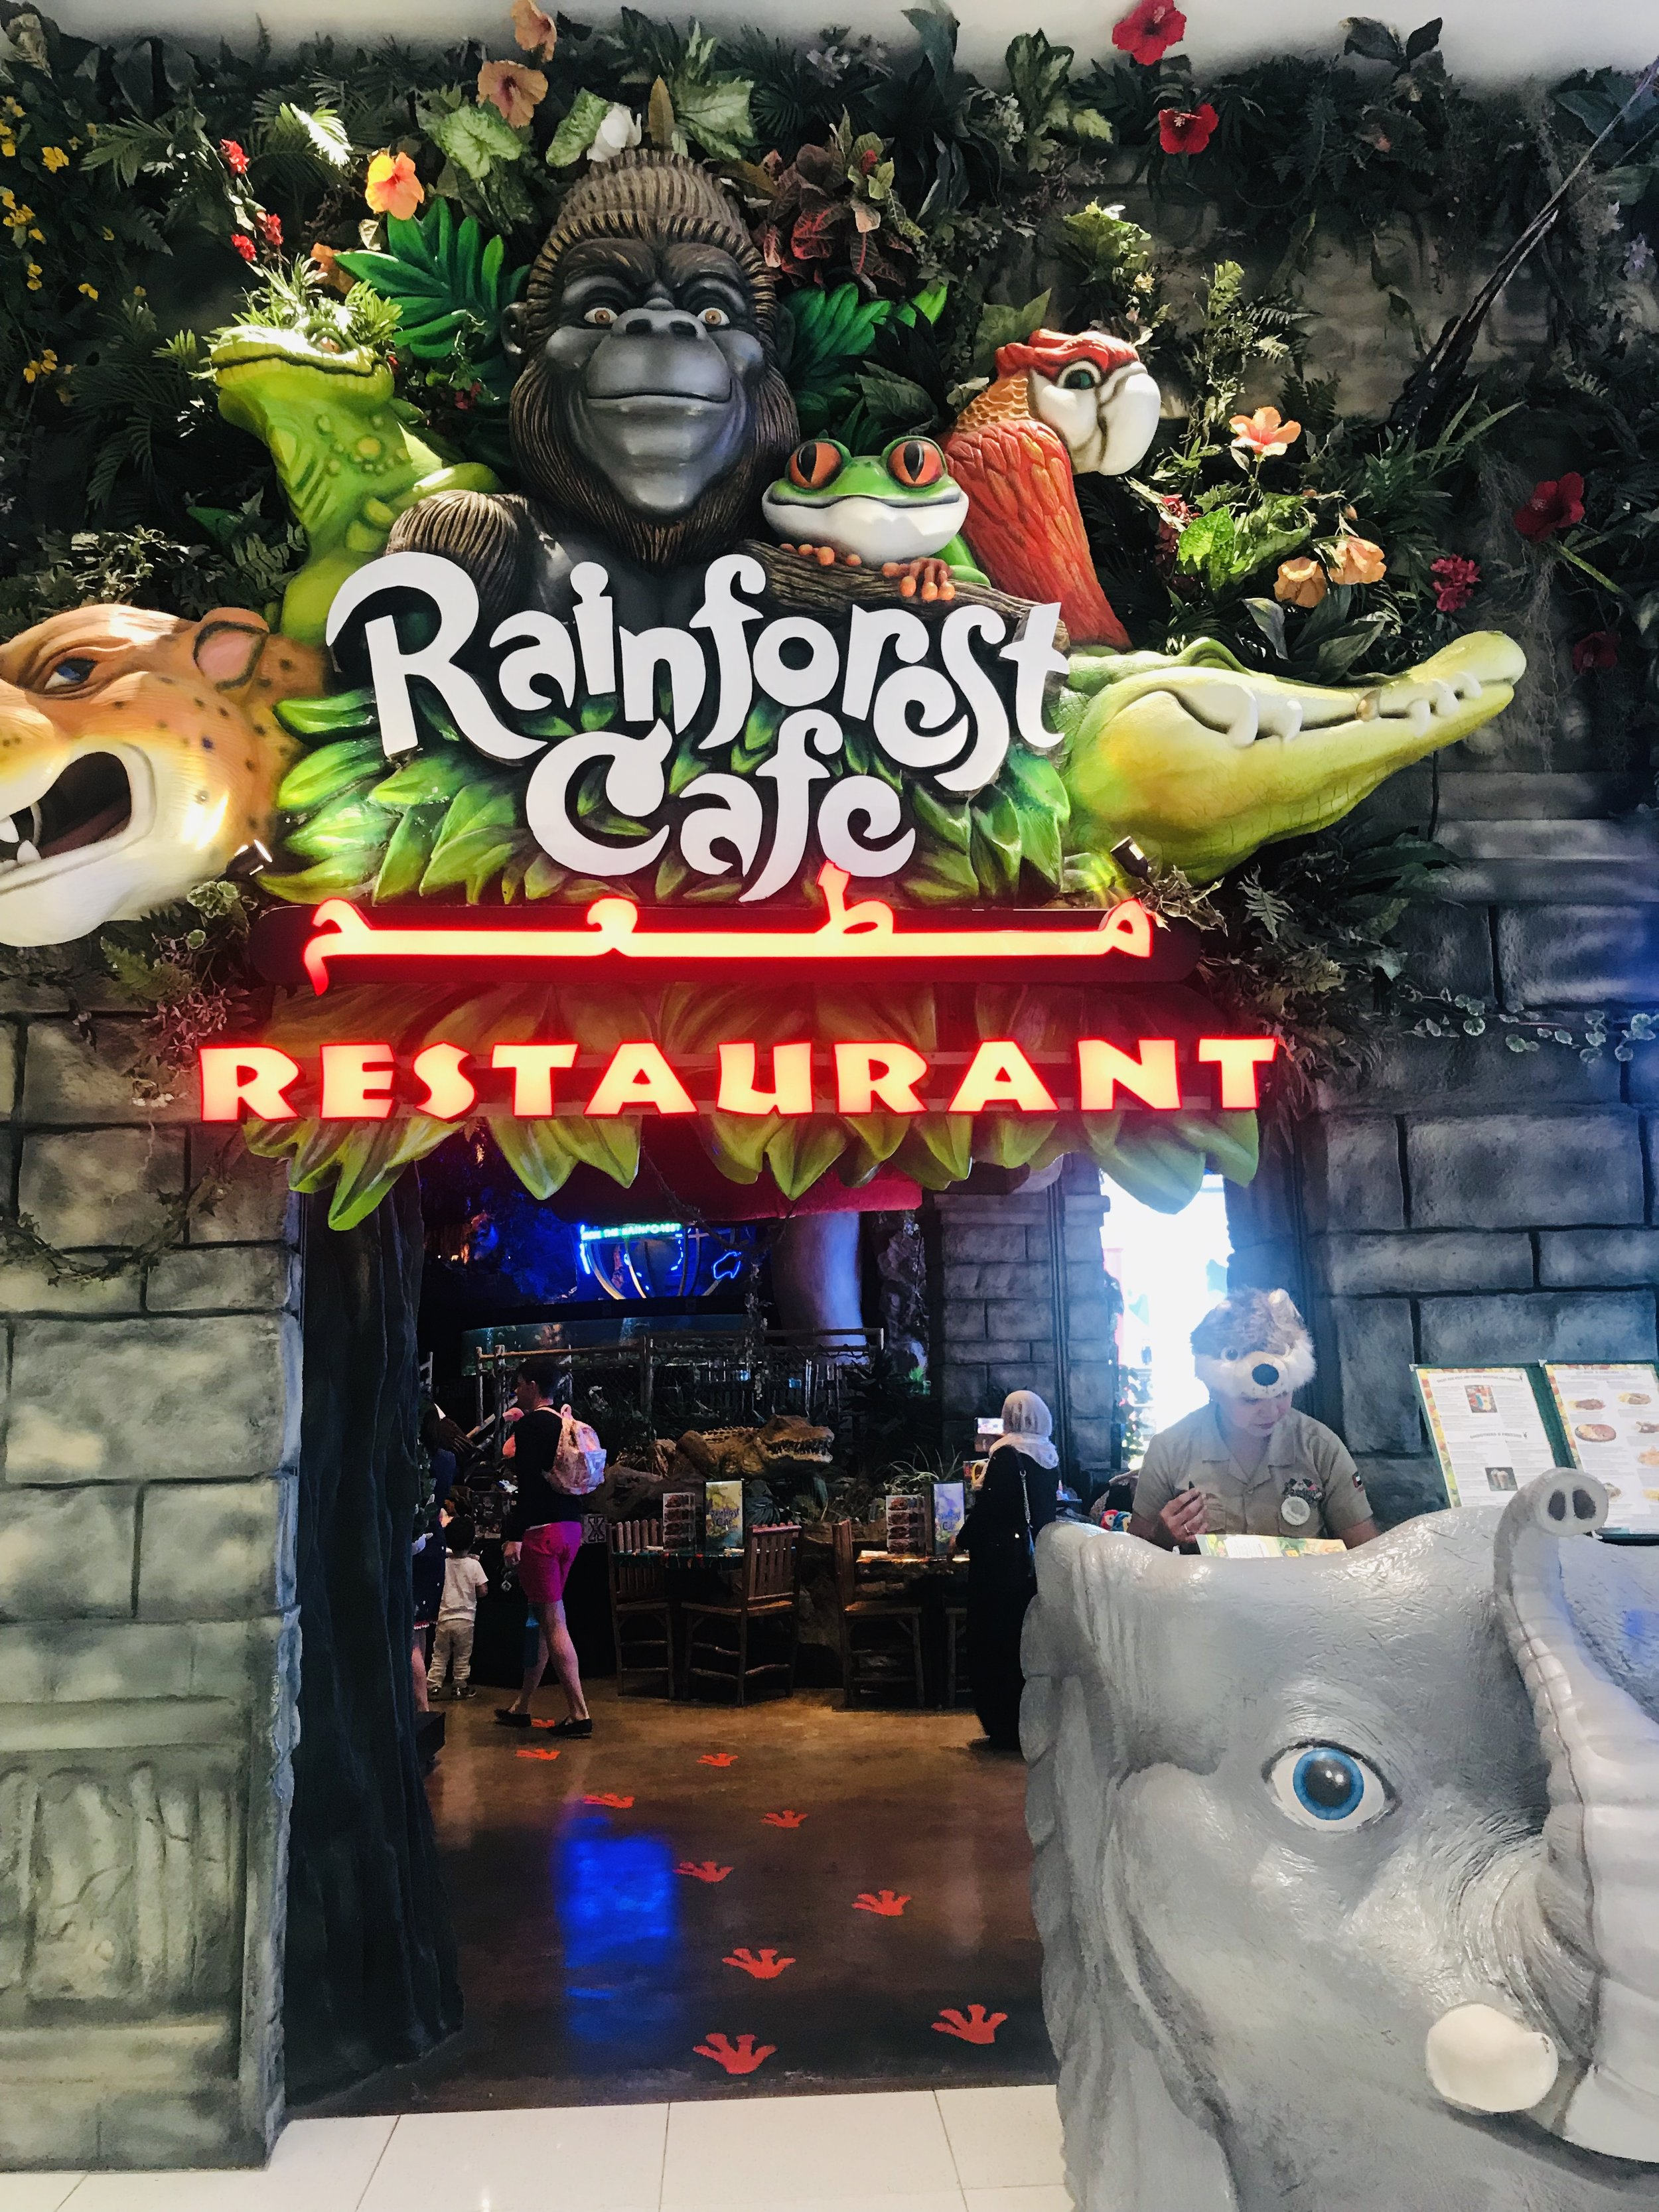 Entrance to the Rainforest Cafe